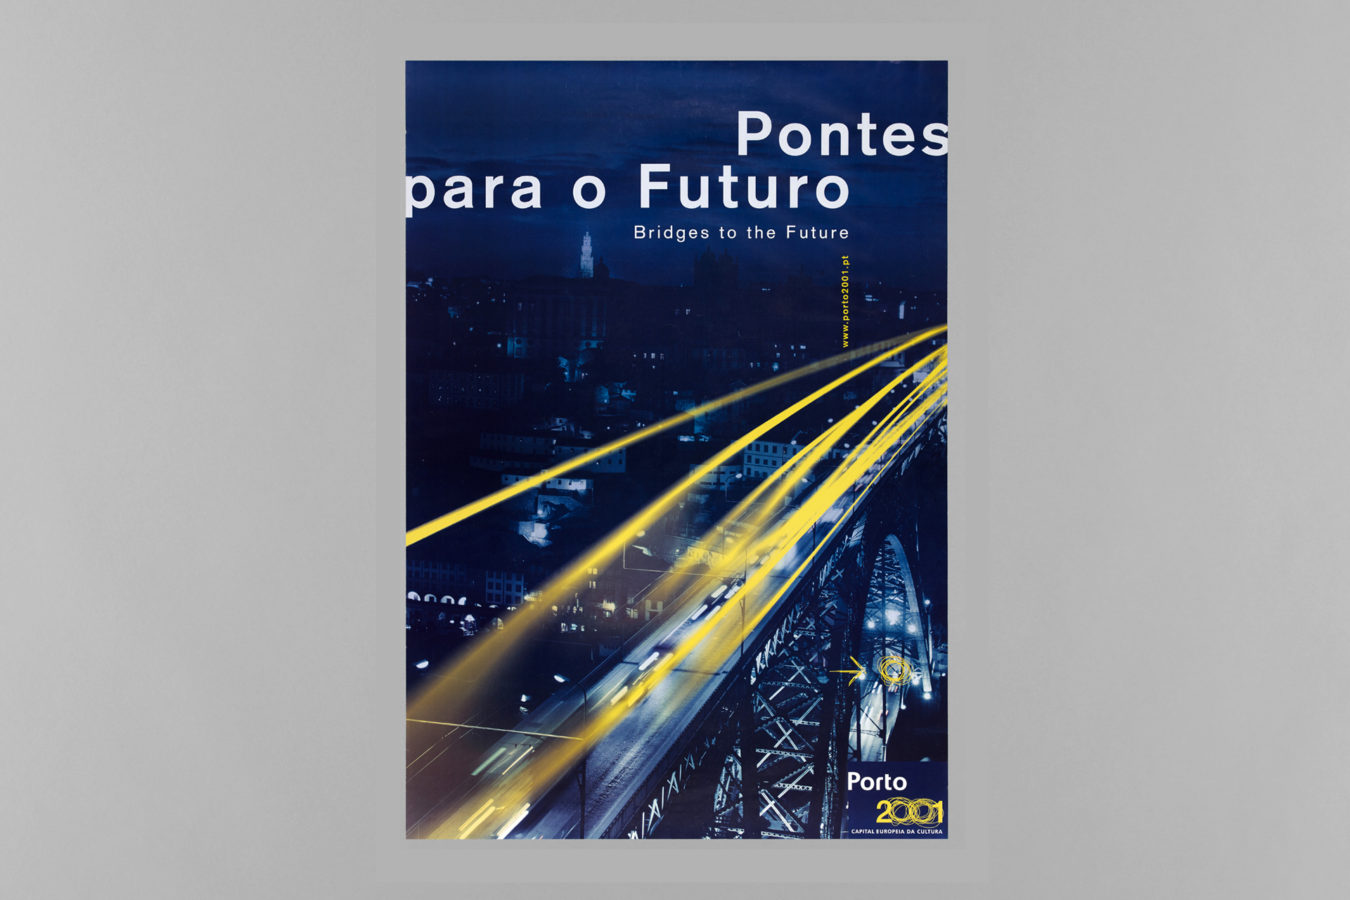 Institucional Communication <br>Porto2001